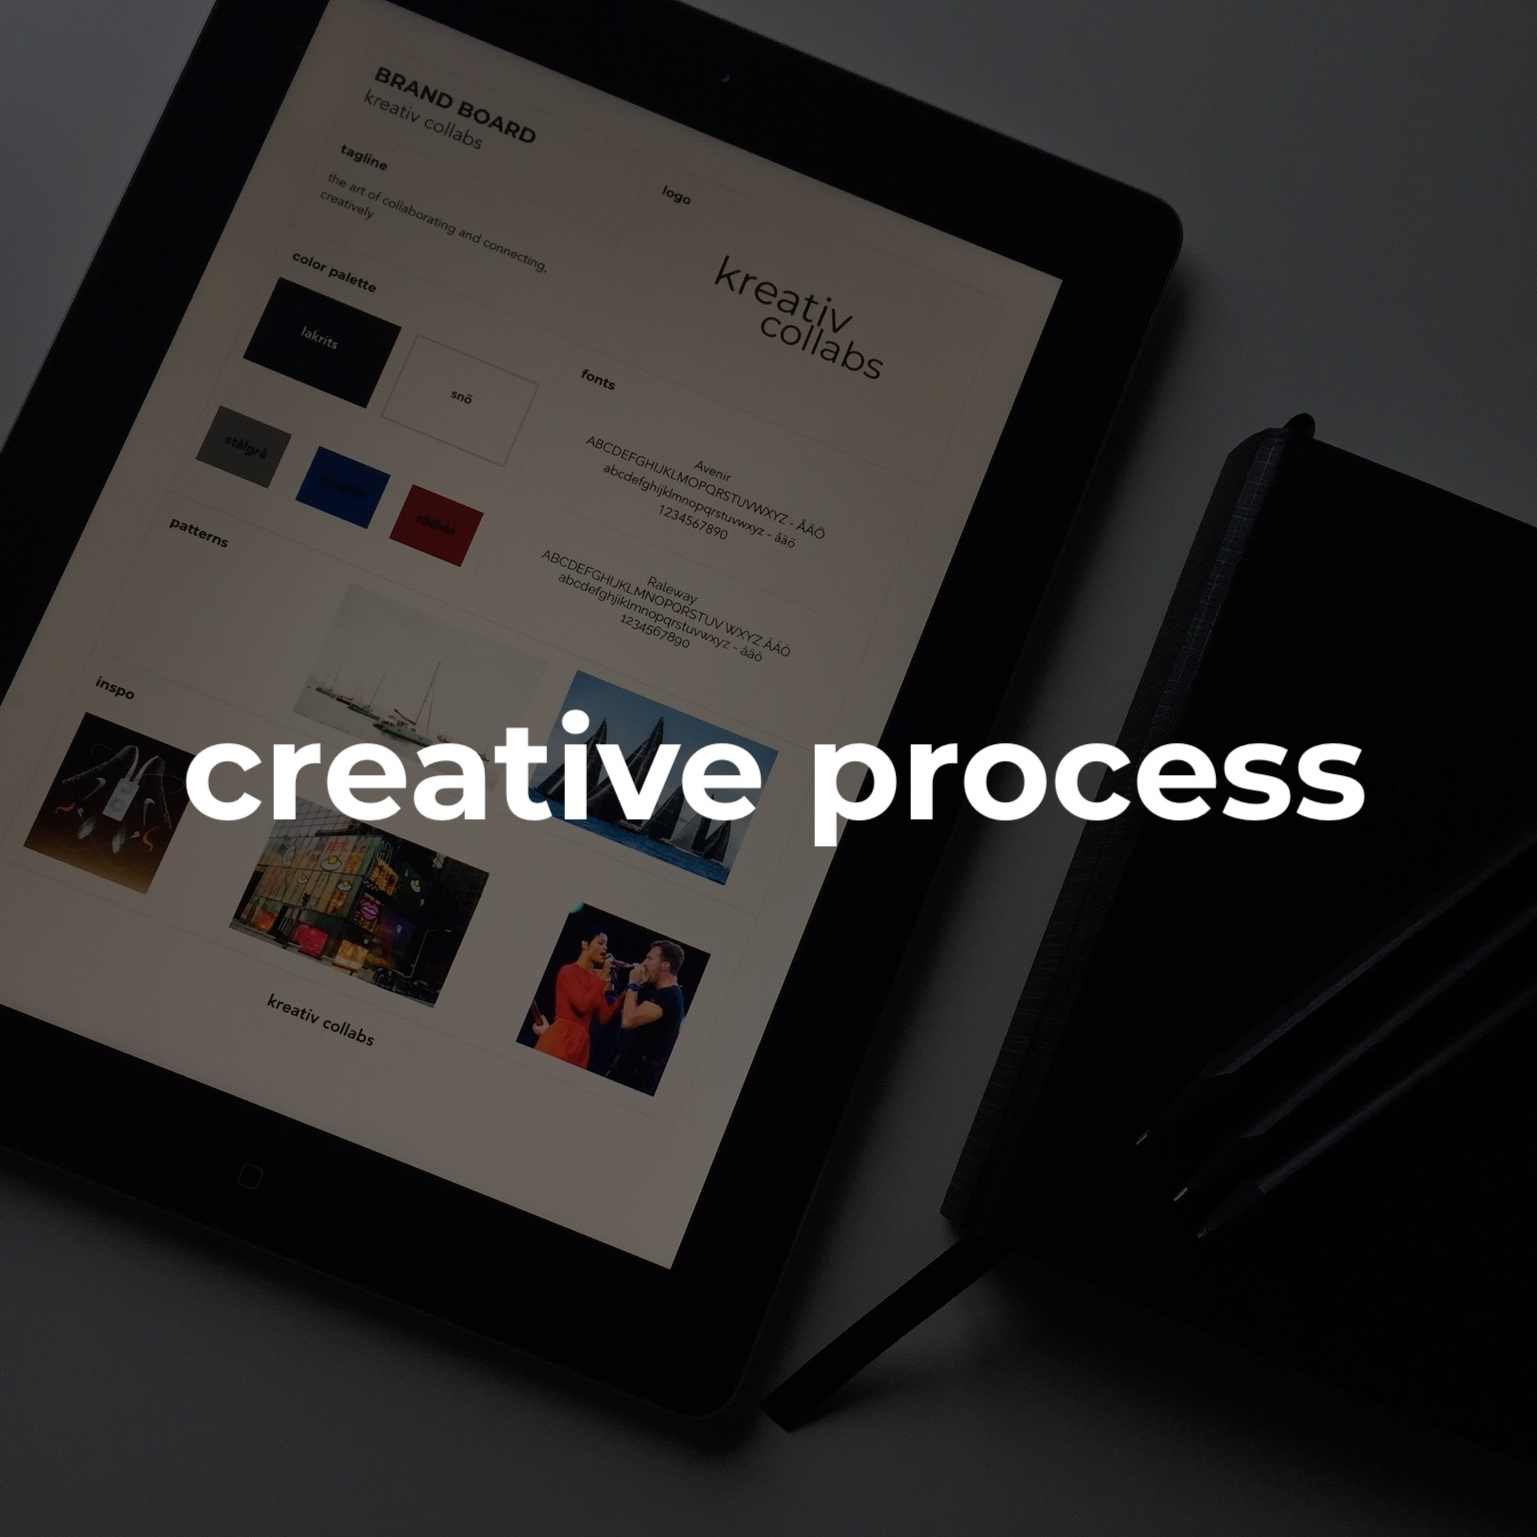 #creativeprocess   i use a fine art approach that uses visualizing, researching, processing and repeating until we have your exclusively designed brand id.